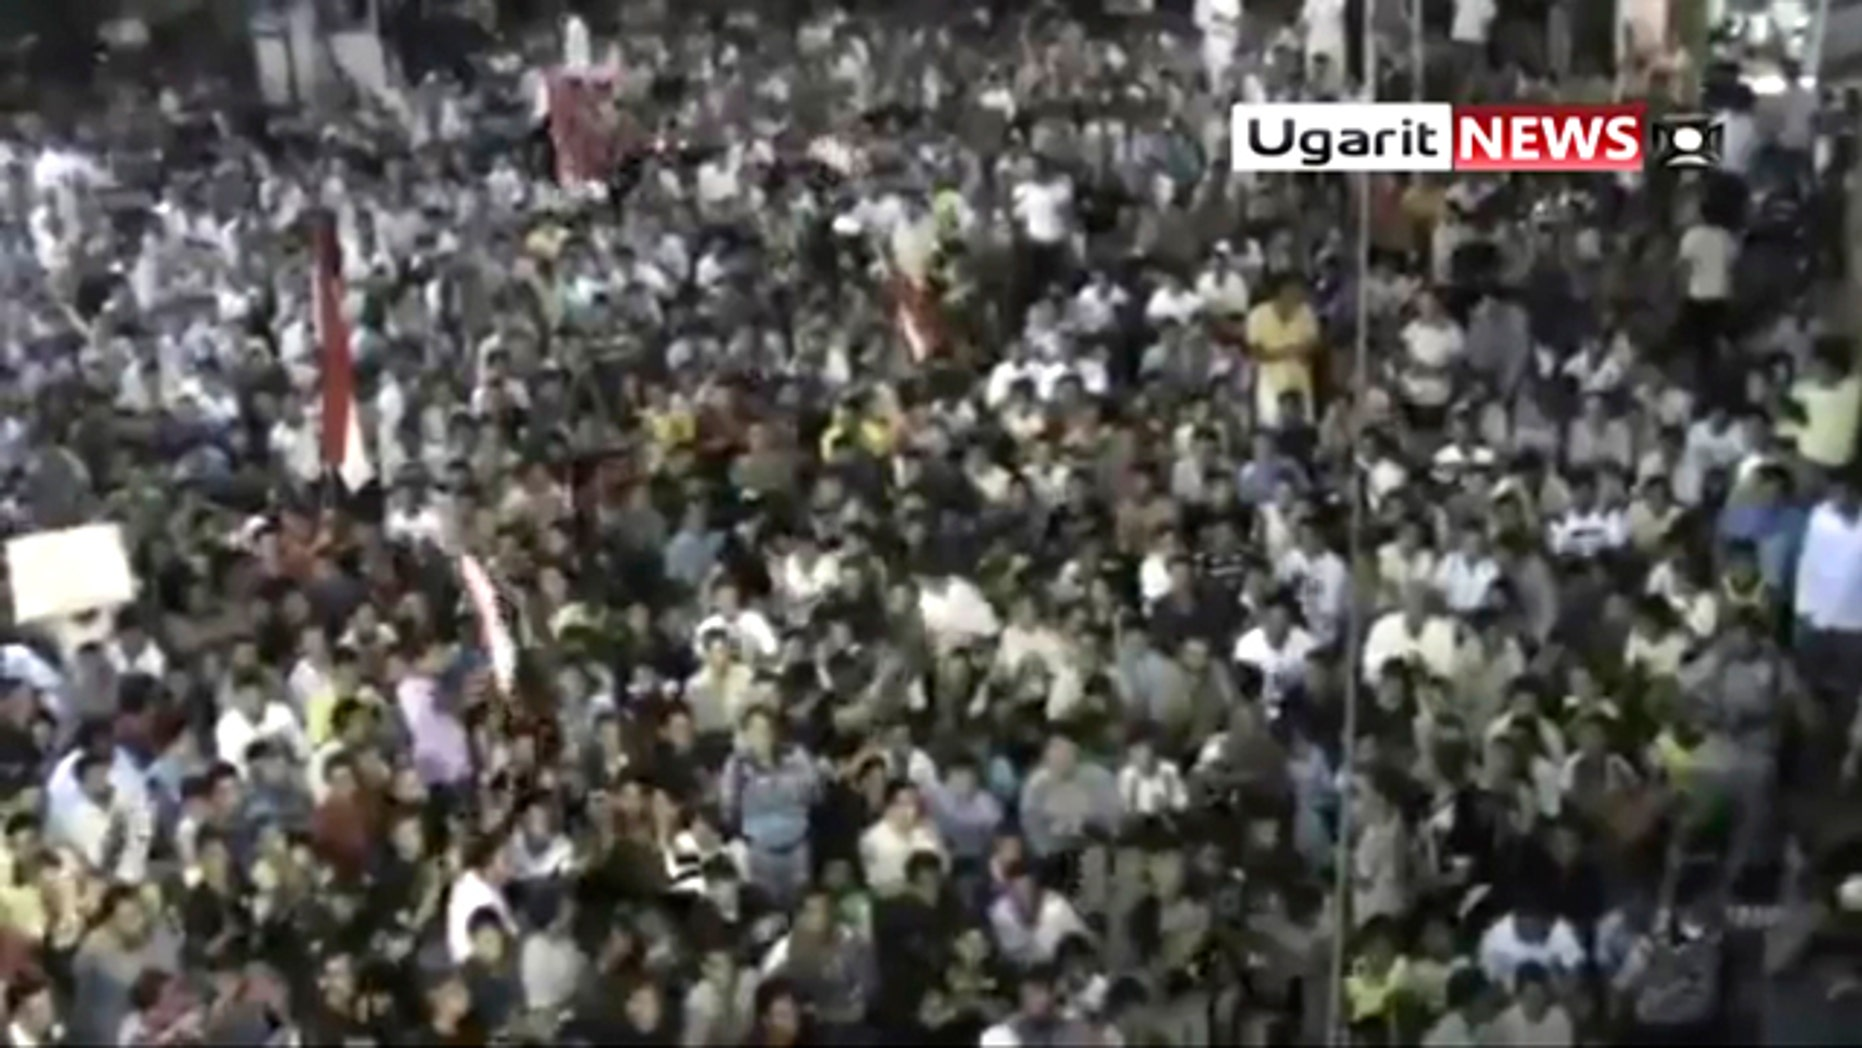 "Aug. 18: In this image from amateur video by the Ugarit News group, a large crowd reportedly gathered in the town of Rastan near Homs on Wed., Aug 17, during which people chanted ""Rastan demands the execution of the president."""